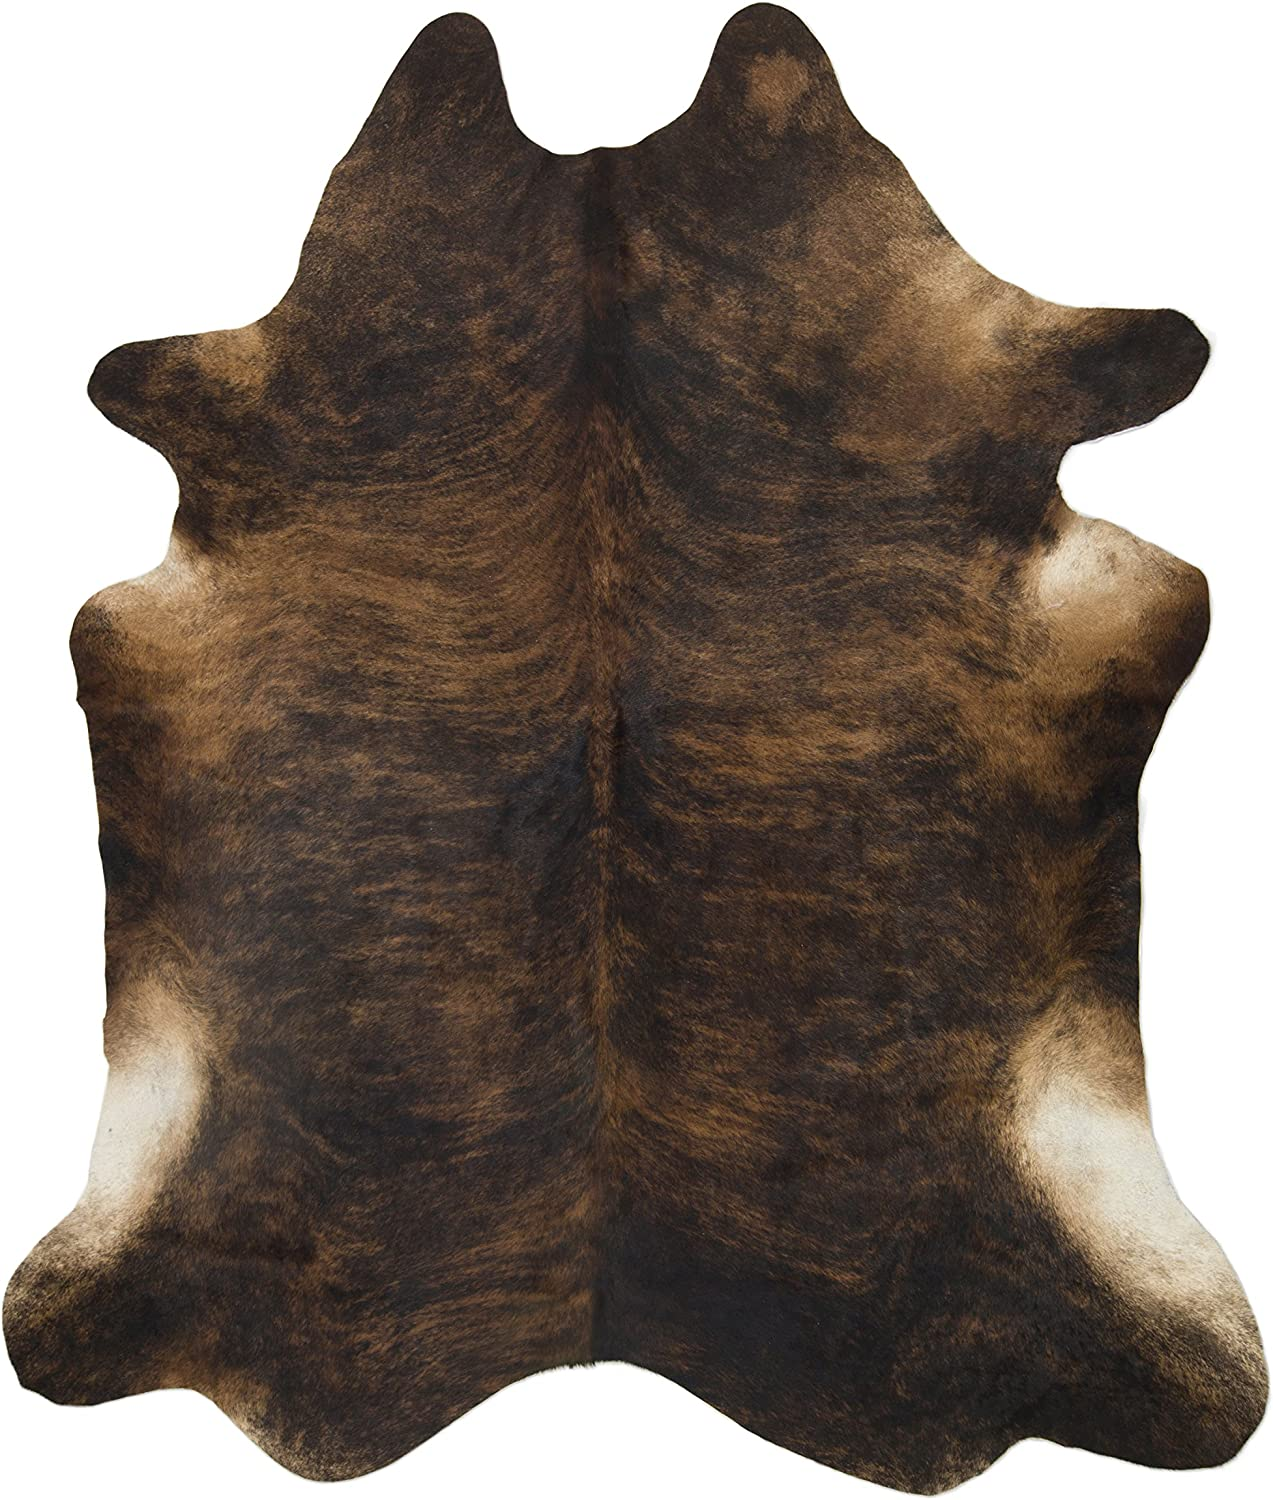 Crown Home Innovations | Brazilian Cowhide Area Rug | 100% Authentic Natural Leather | Unique Stylish Decorative Accent | No Smell or Shedding | Color, Brindle | Size, 6'x 7'